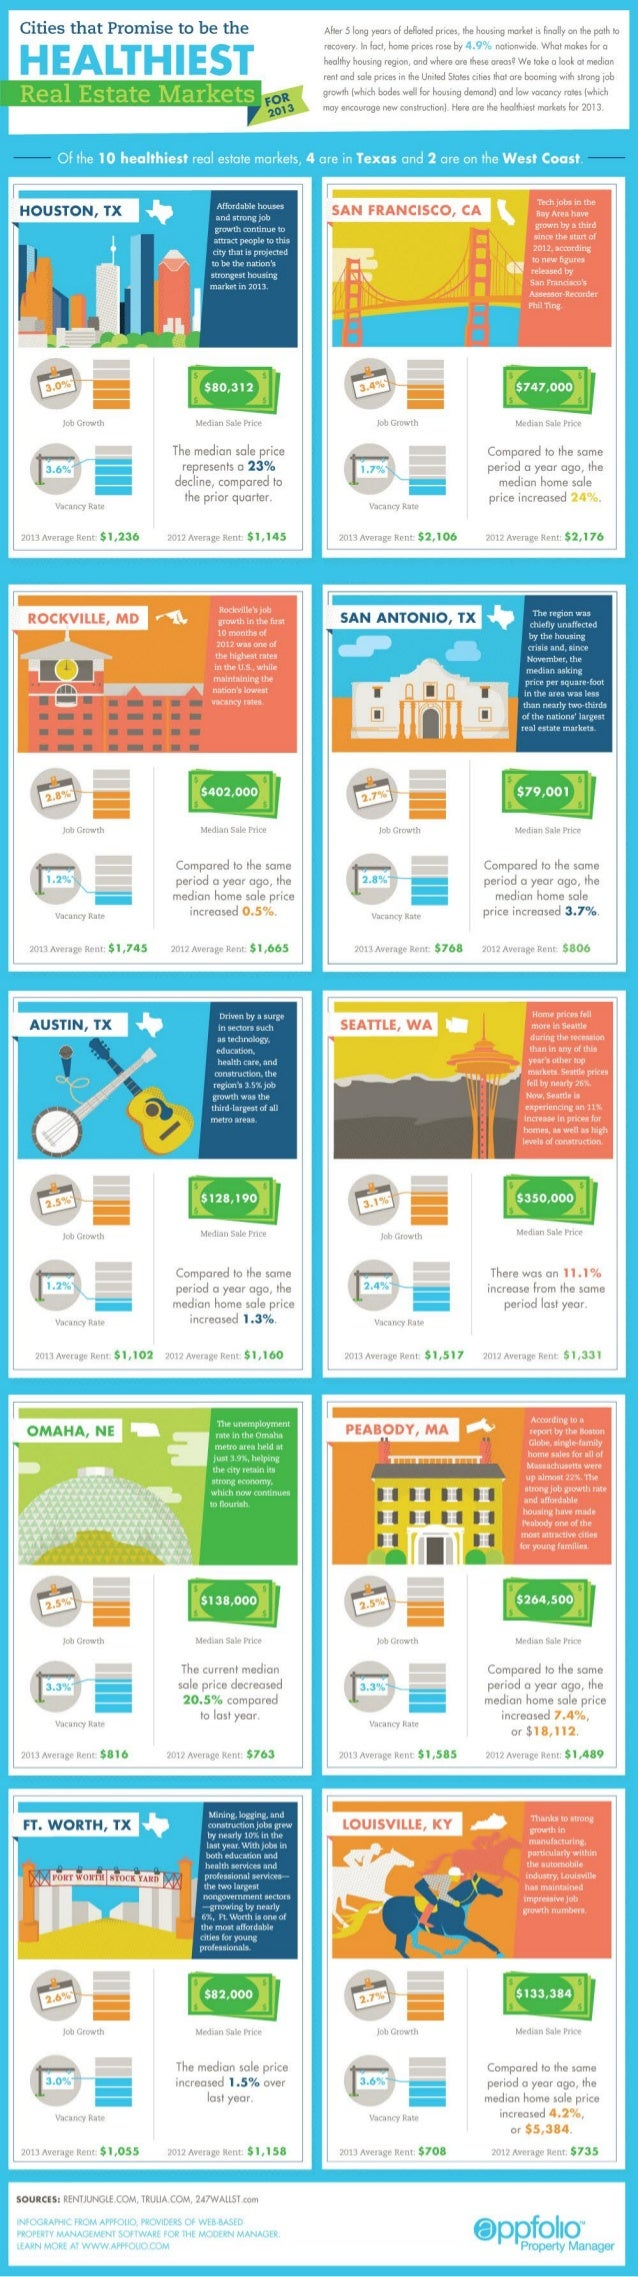 Cities That Promise To Be The Healthiest Real Estate Markets For 2013 (Infographic)